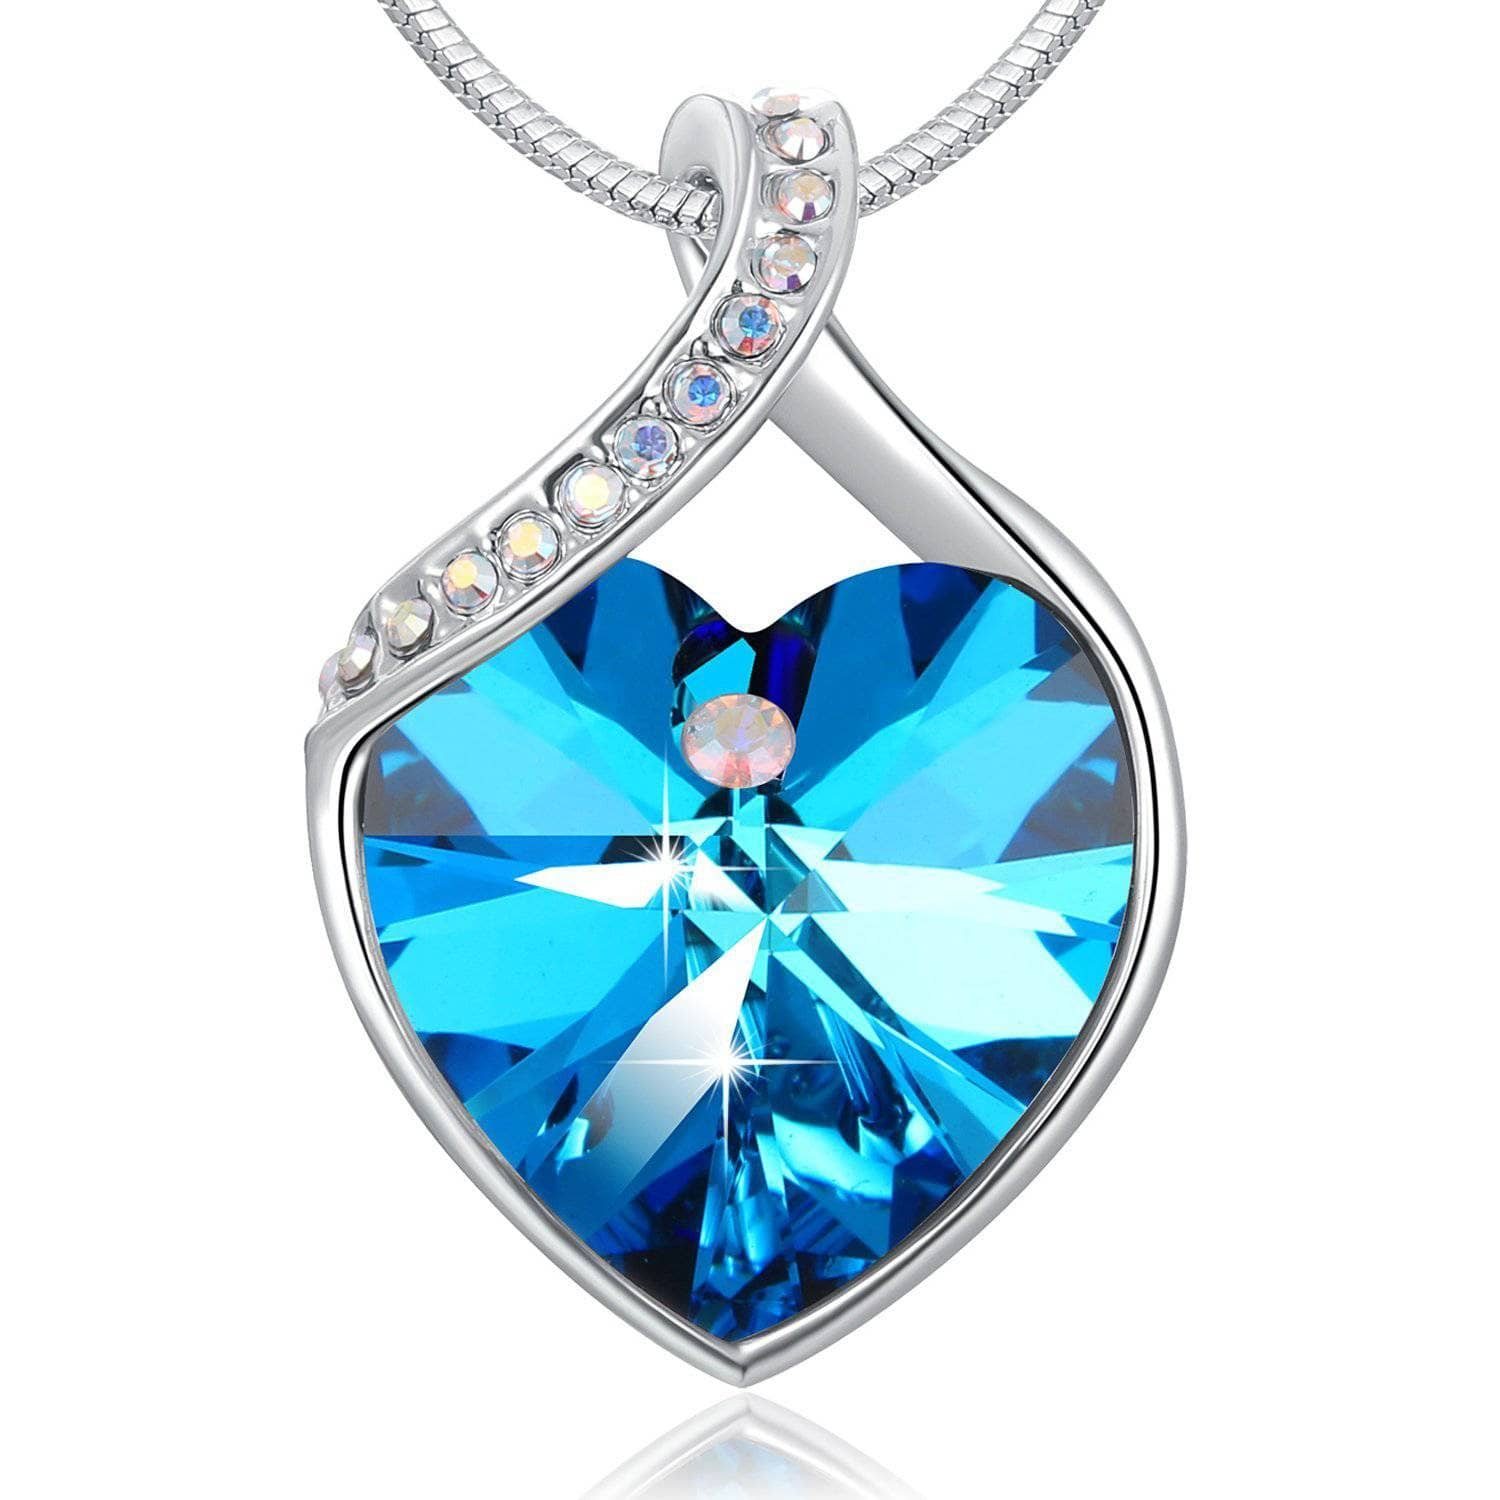 Forever love heart shape pendant necklace necklace bluepurple forever love heart shape pendant necklace blue aloadofball Image collections